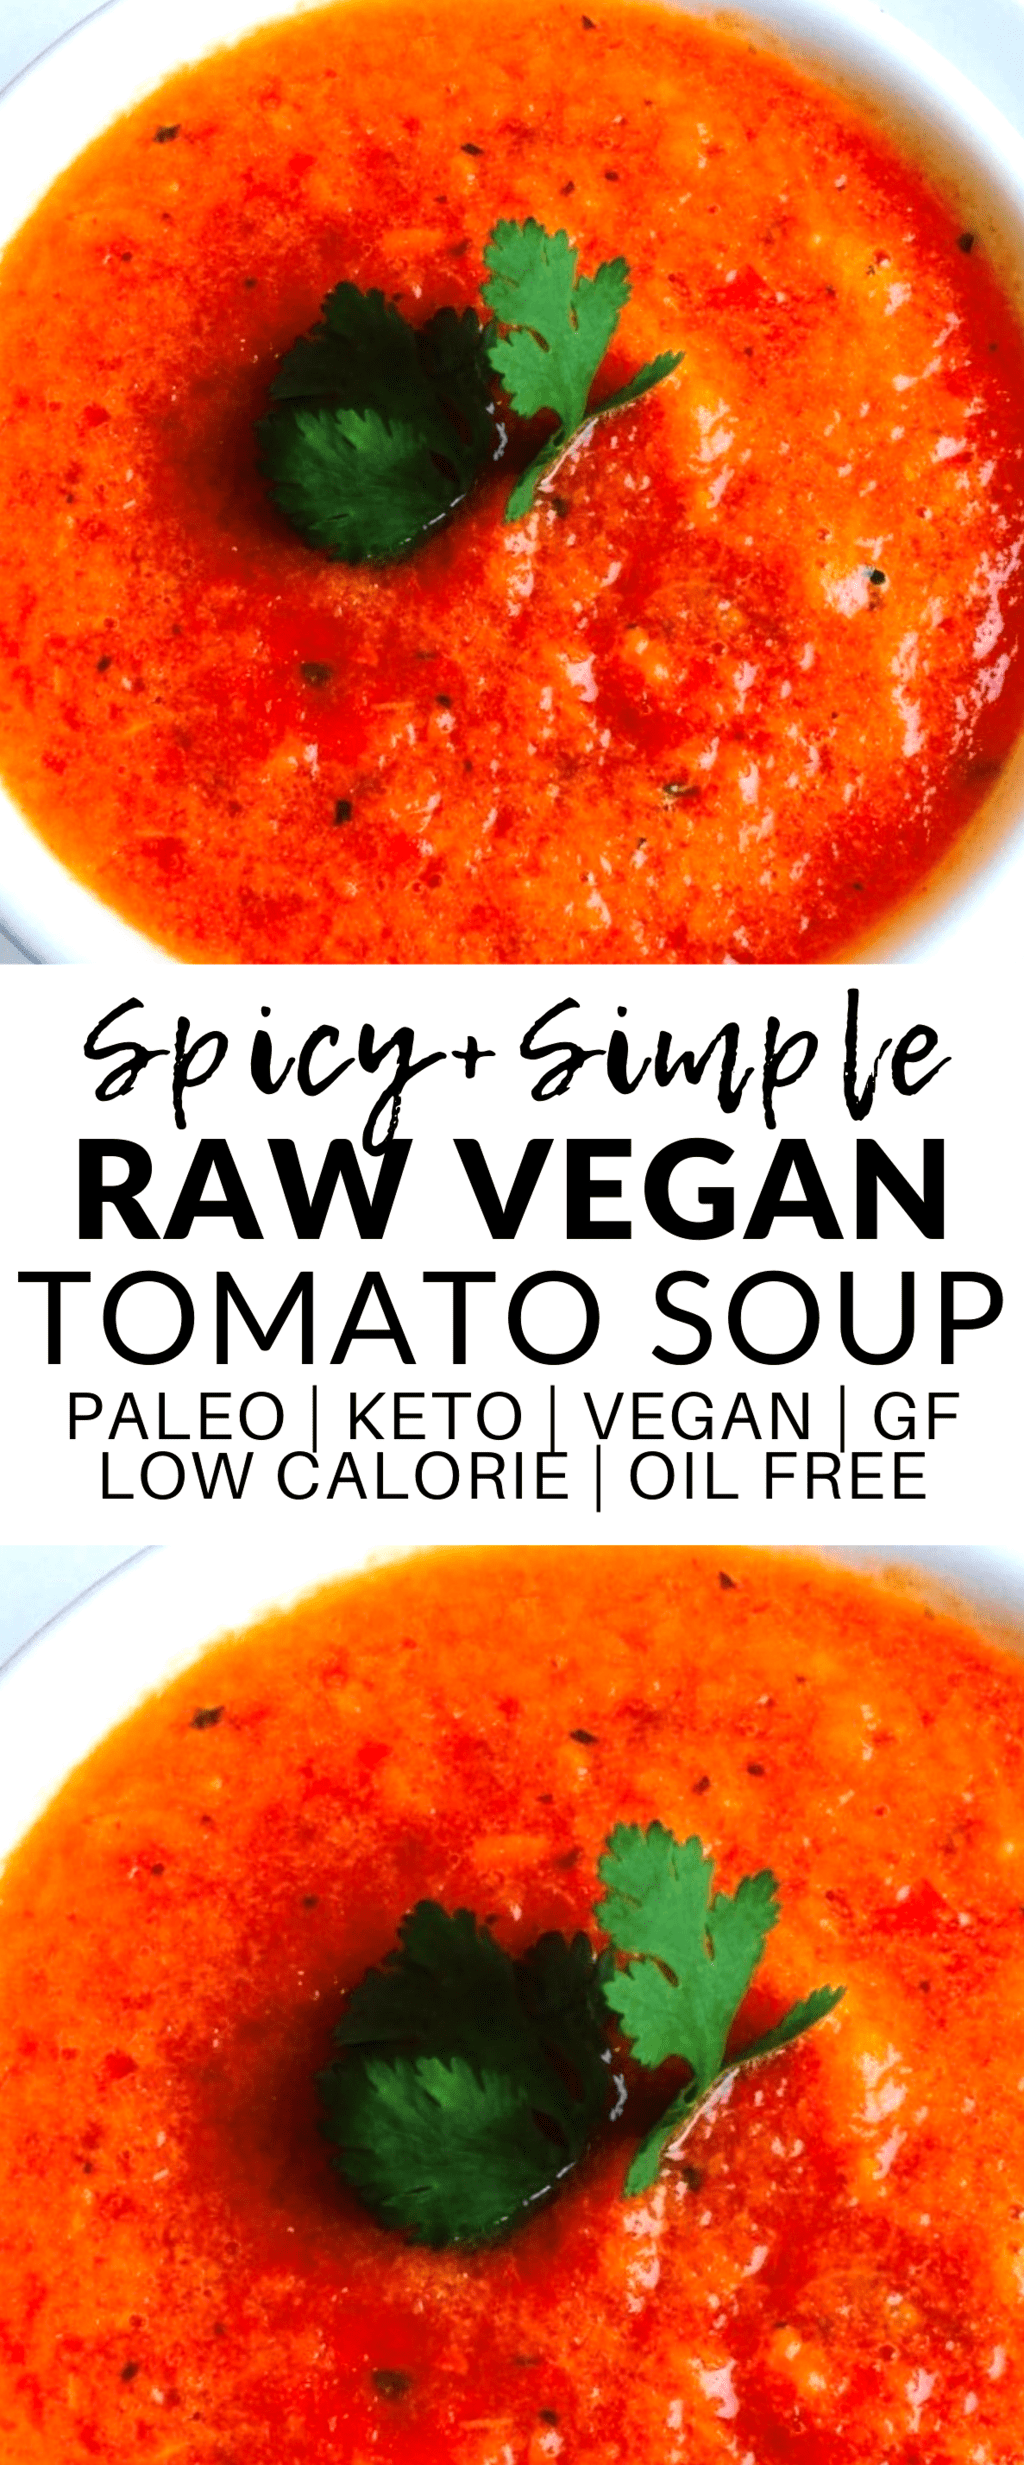 This Spicy Raw Vegan Tomato Soup is totally delicious – the perfect cozy winter meal or side. It's also keto, gluten-free, low-carb, low-fat, oil-free, dairy-free, paleo, and super low-calorie!